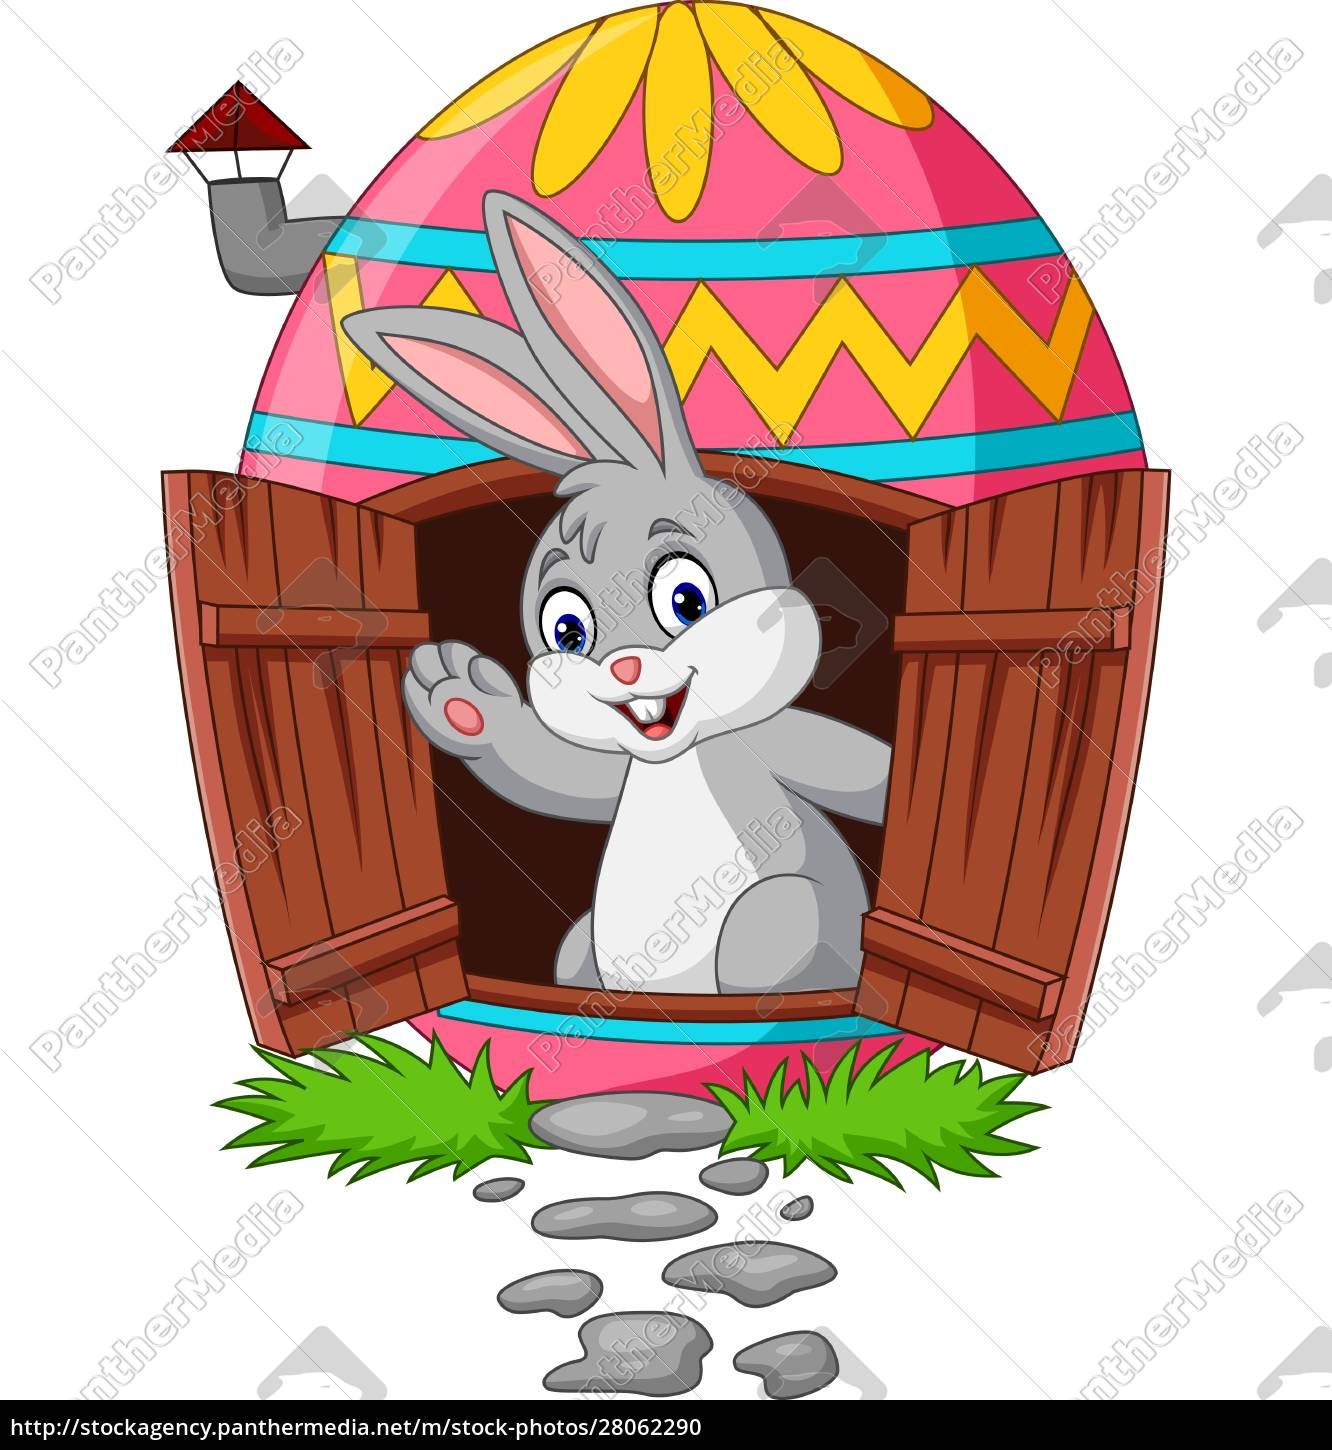 cartoon, bunny, with, decorated, easter, eggs - 28062290